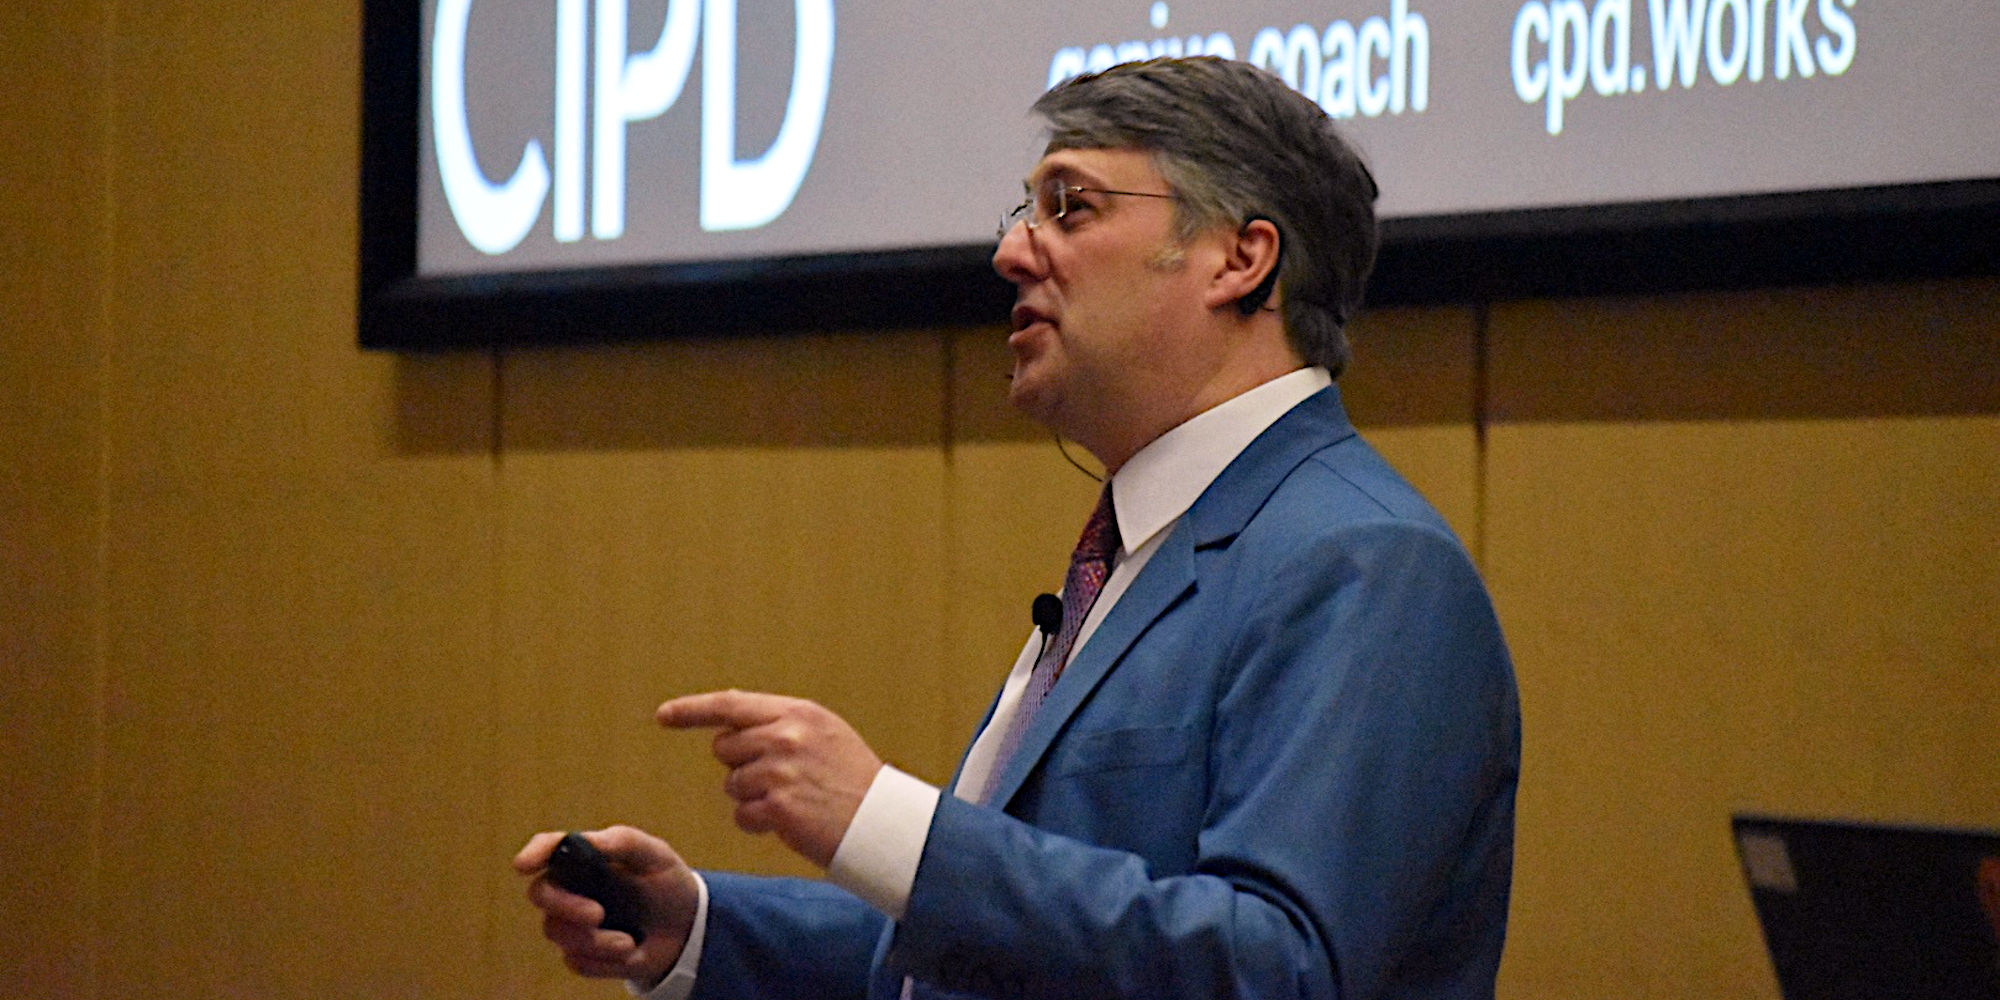 Peter Freeth speaking at the 2019 CIPD Student Conference